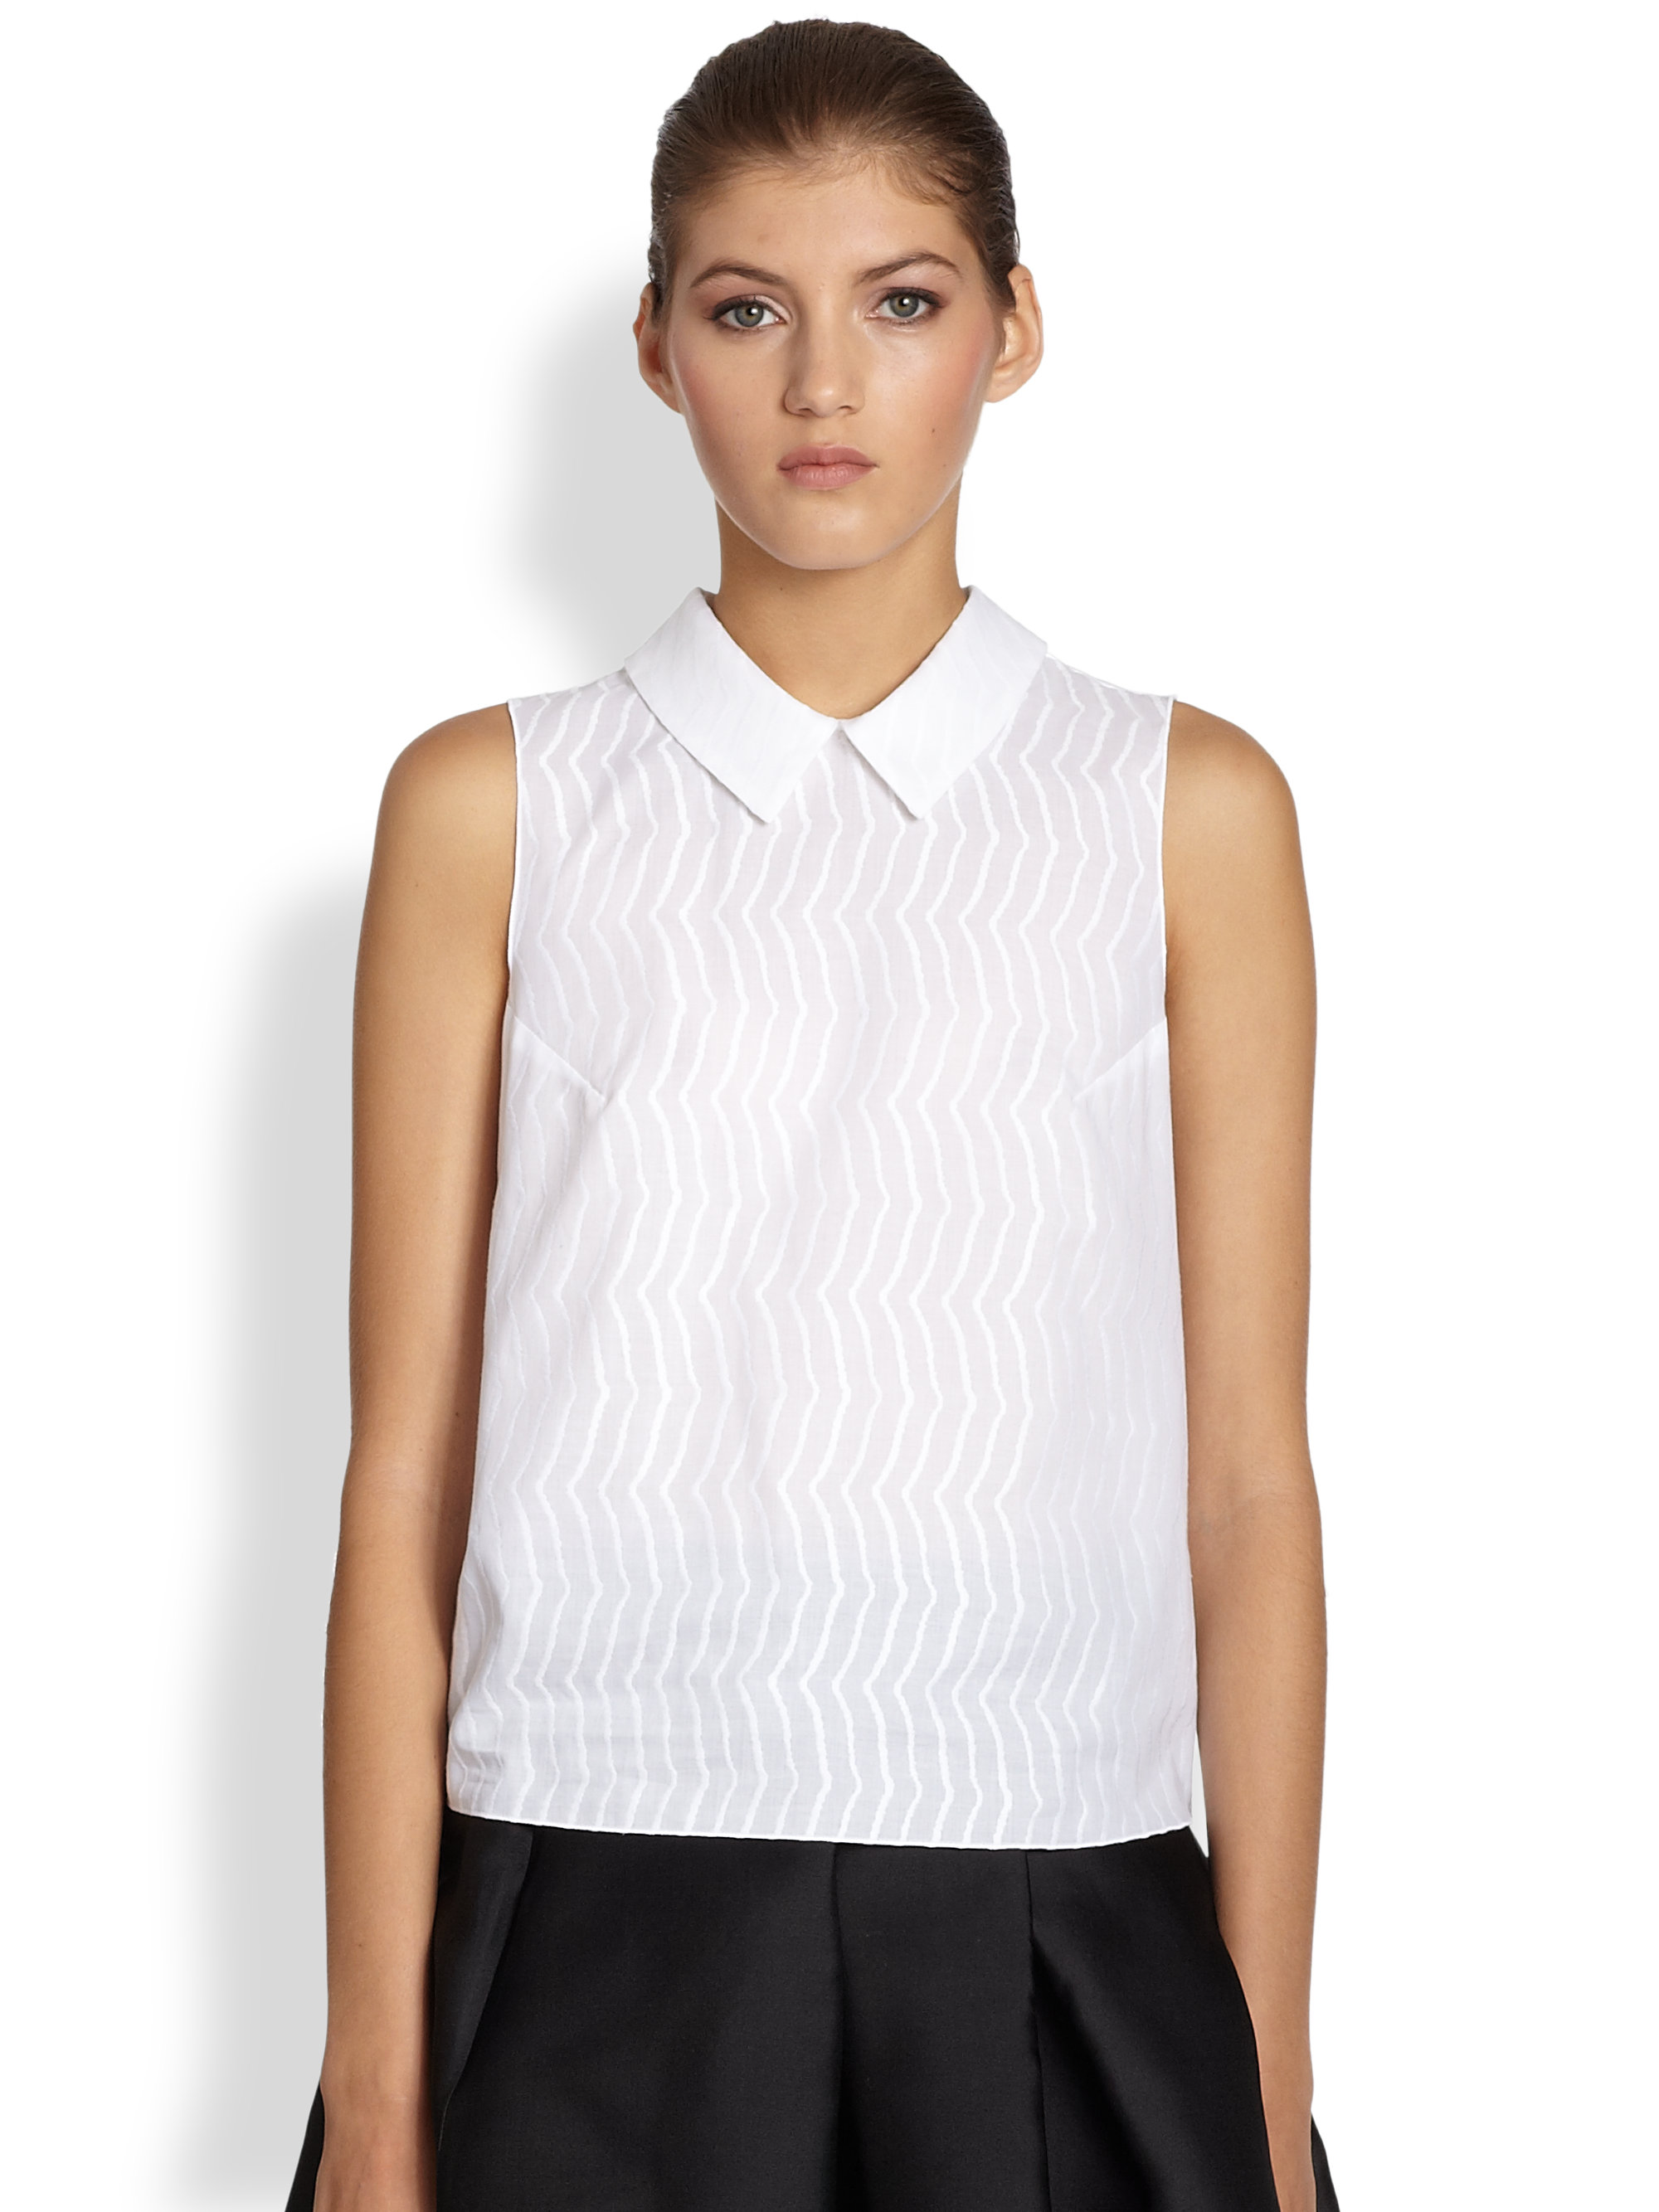 Jil sander navy Sleeveless Collared Shirt in White | Lyst